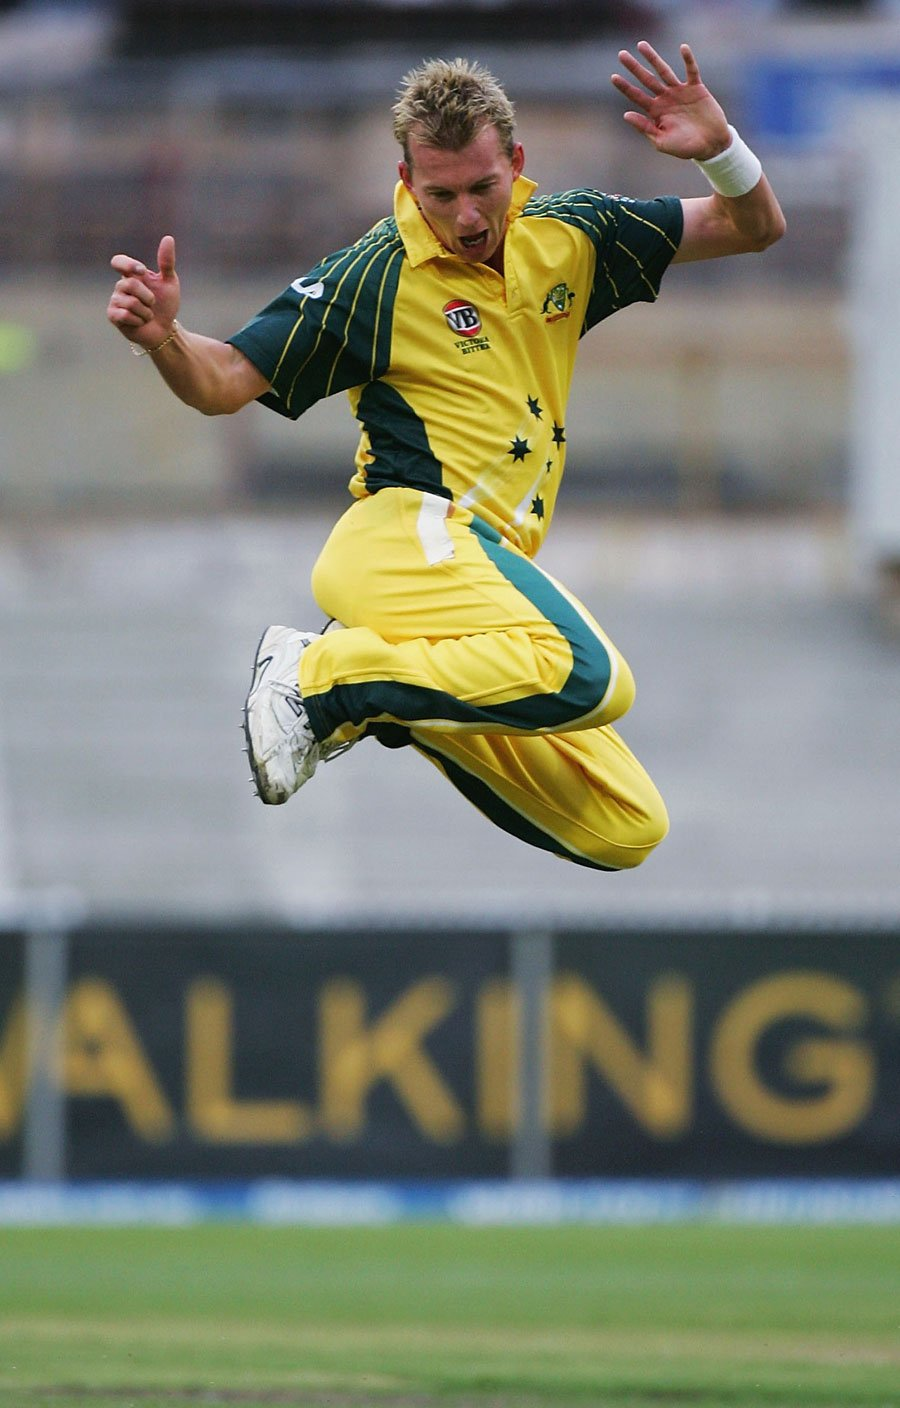 Birthday Brett Lee sir of Pace Bowling